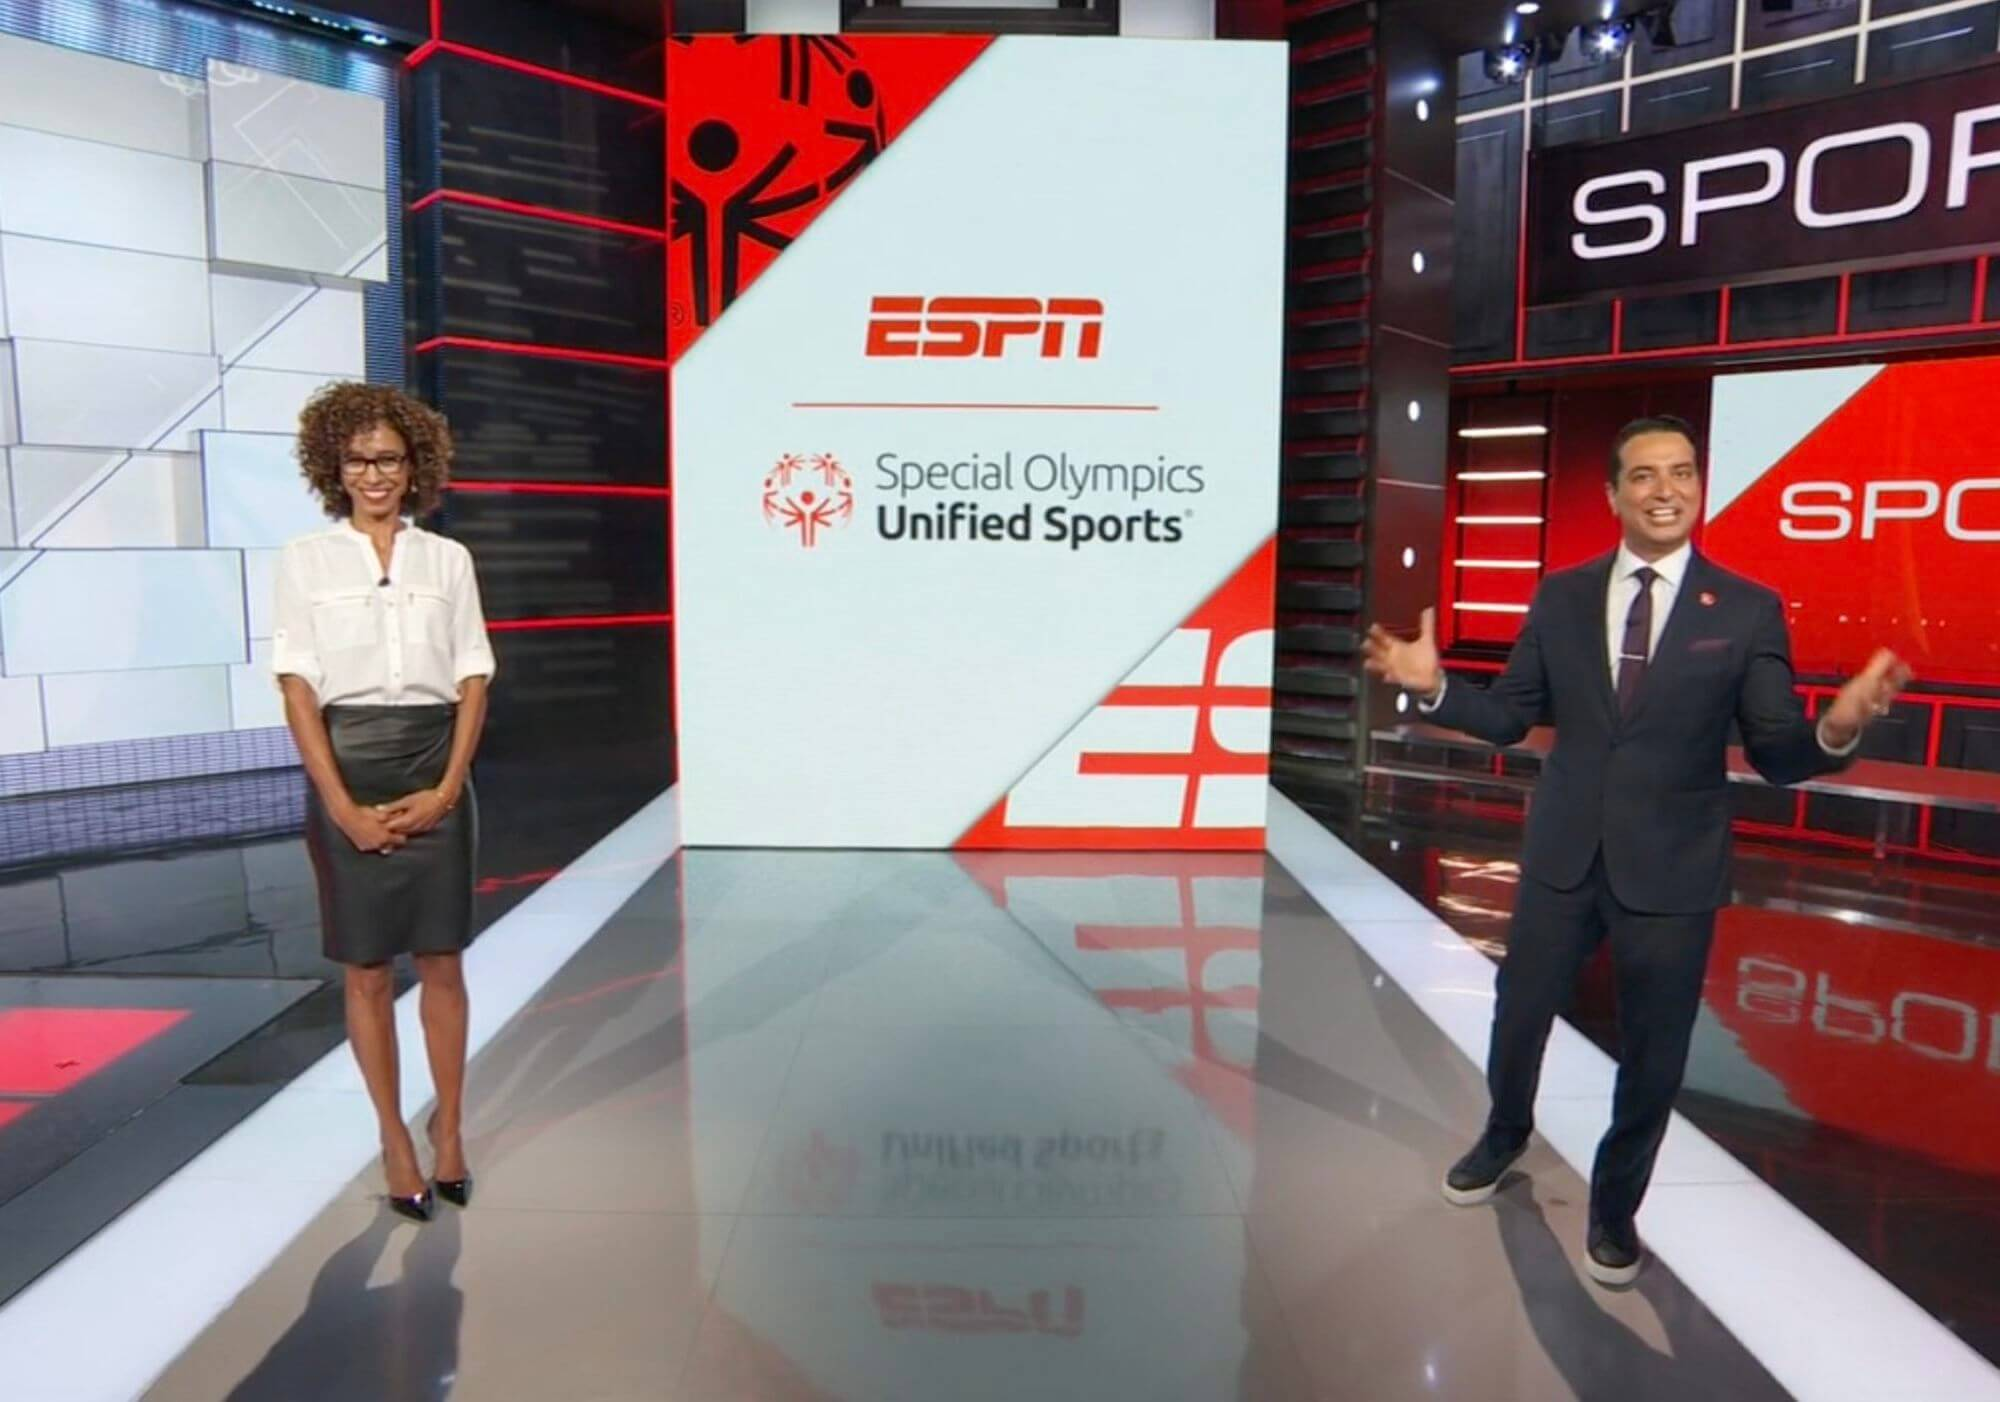 ESPN anchors introduce the 2020 ESPN Top 5 Unified Champion Schools